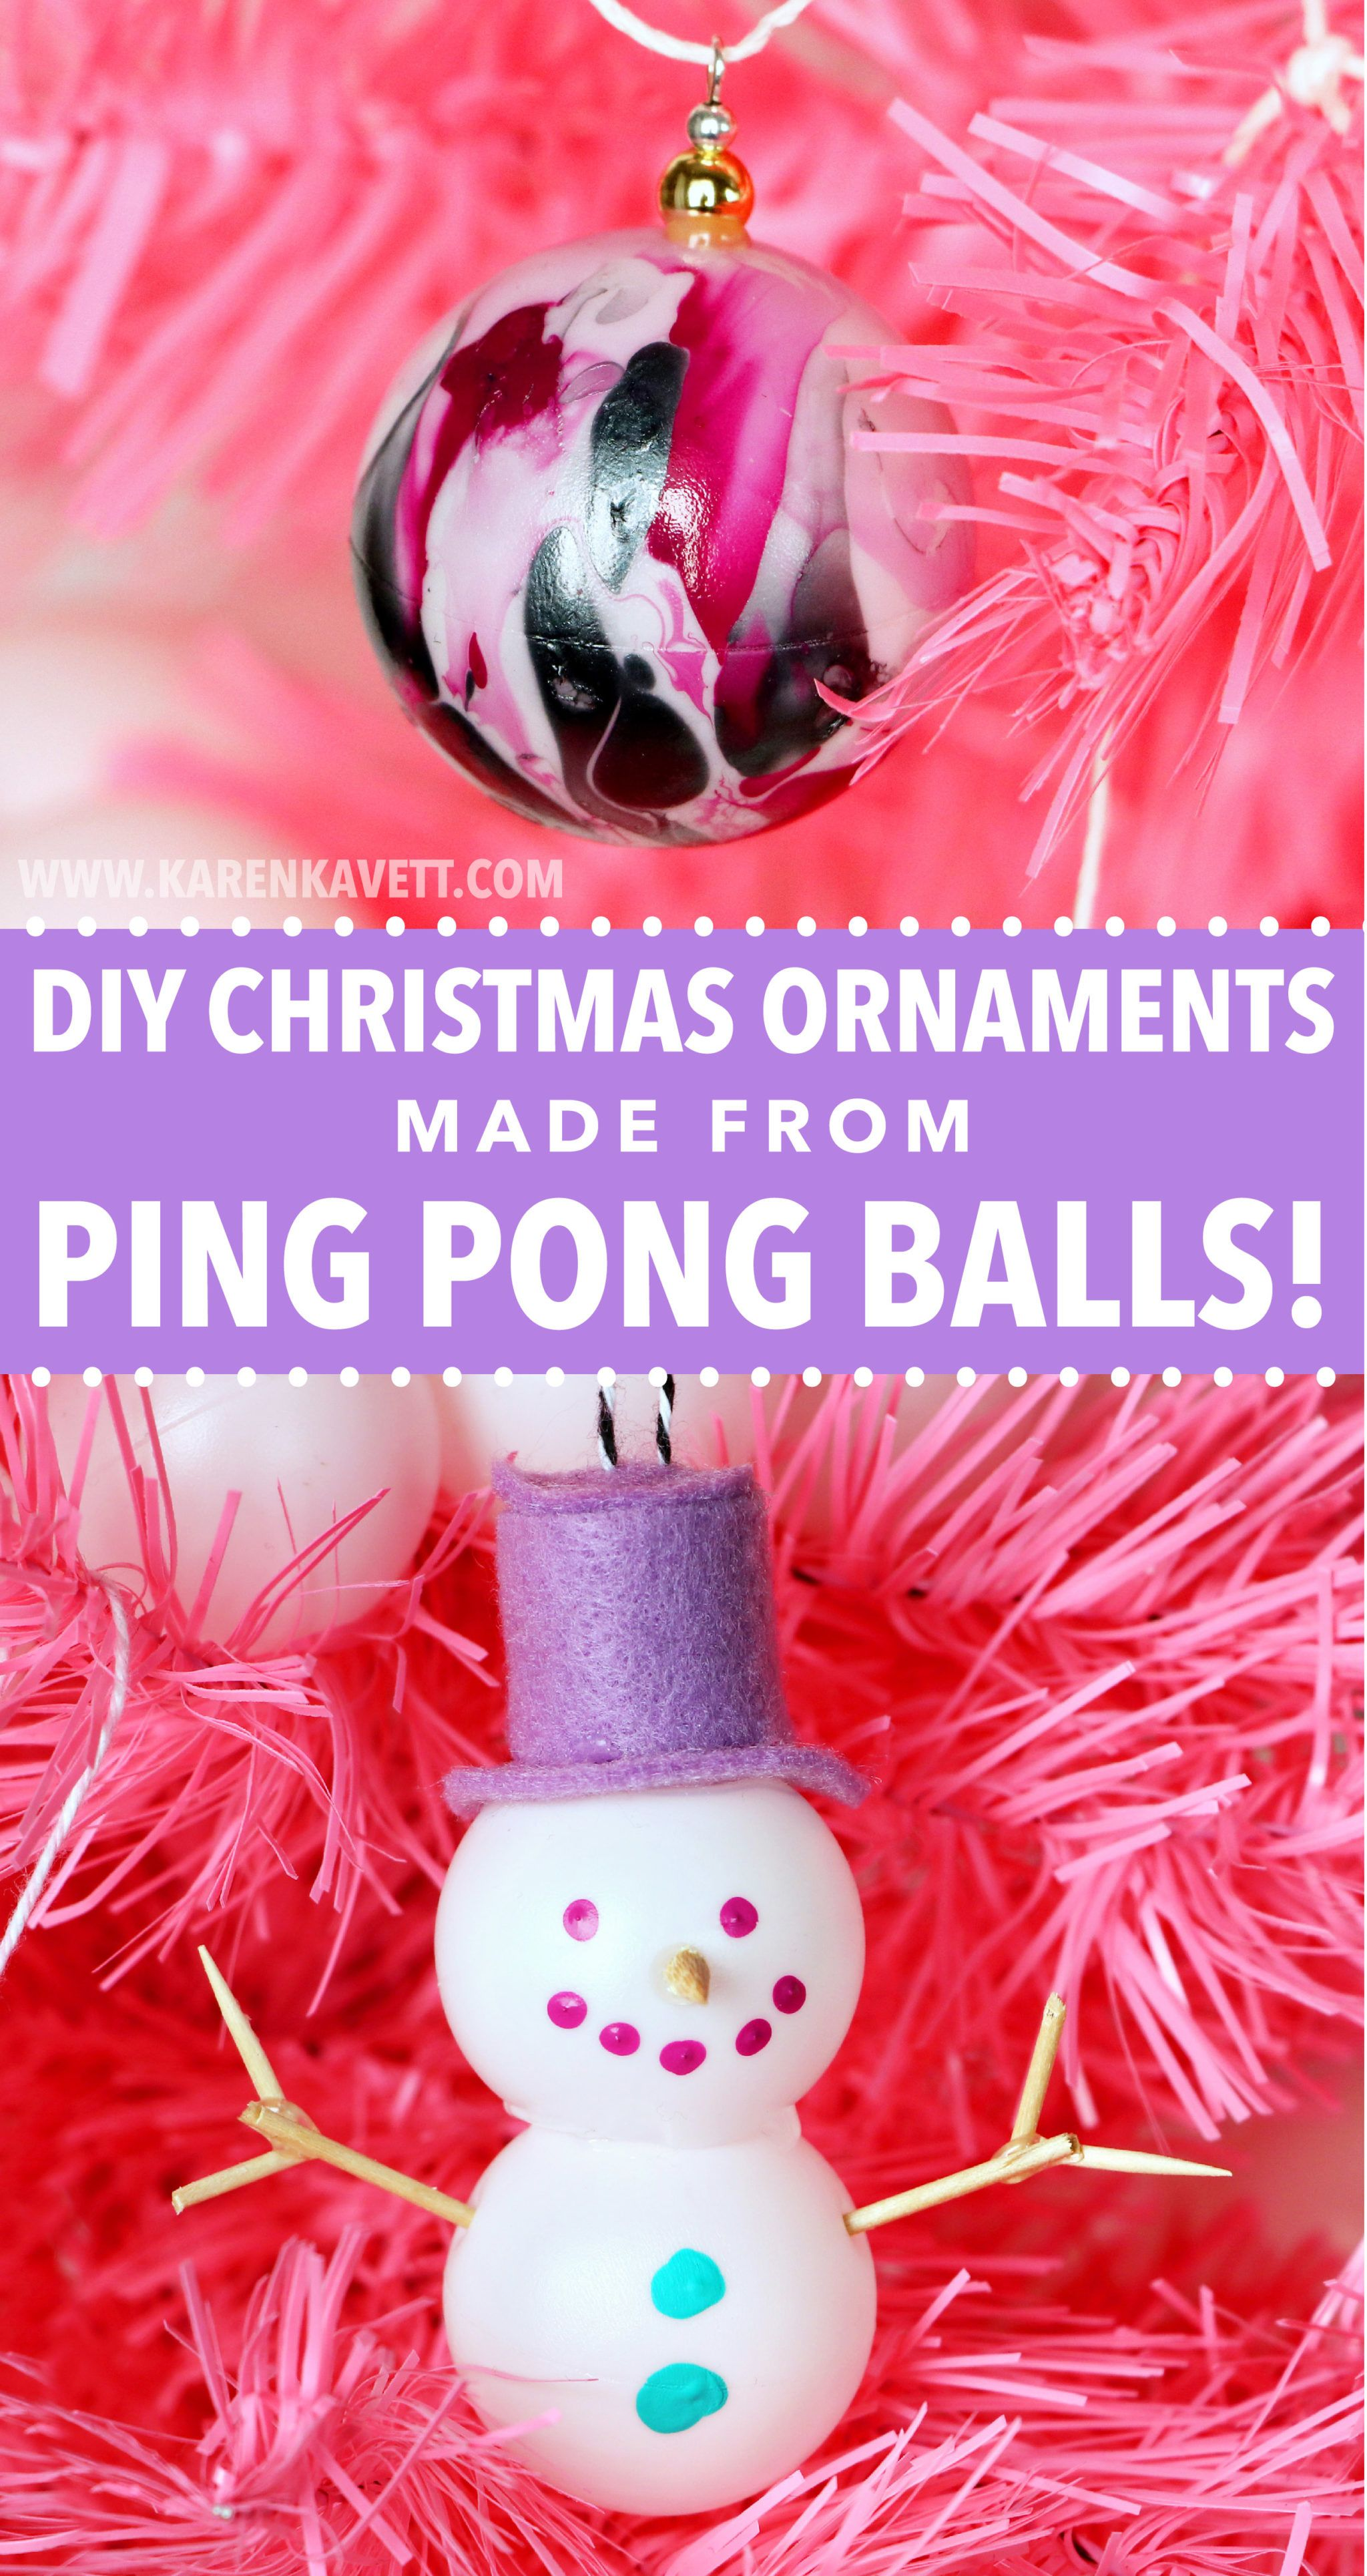 3 Christmas Decorations Made From Ping